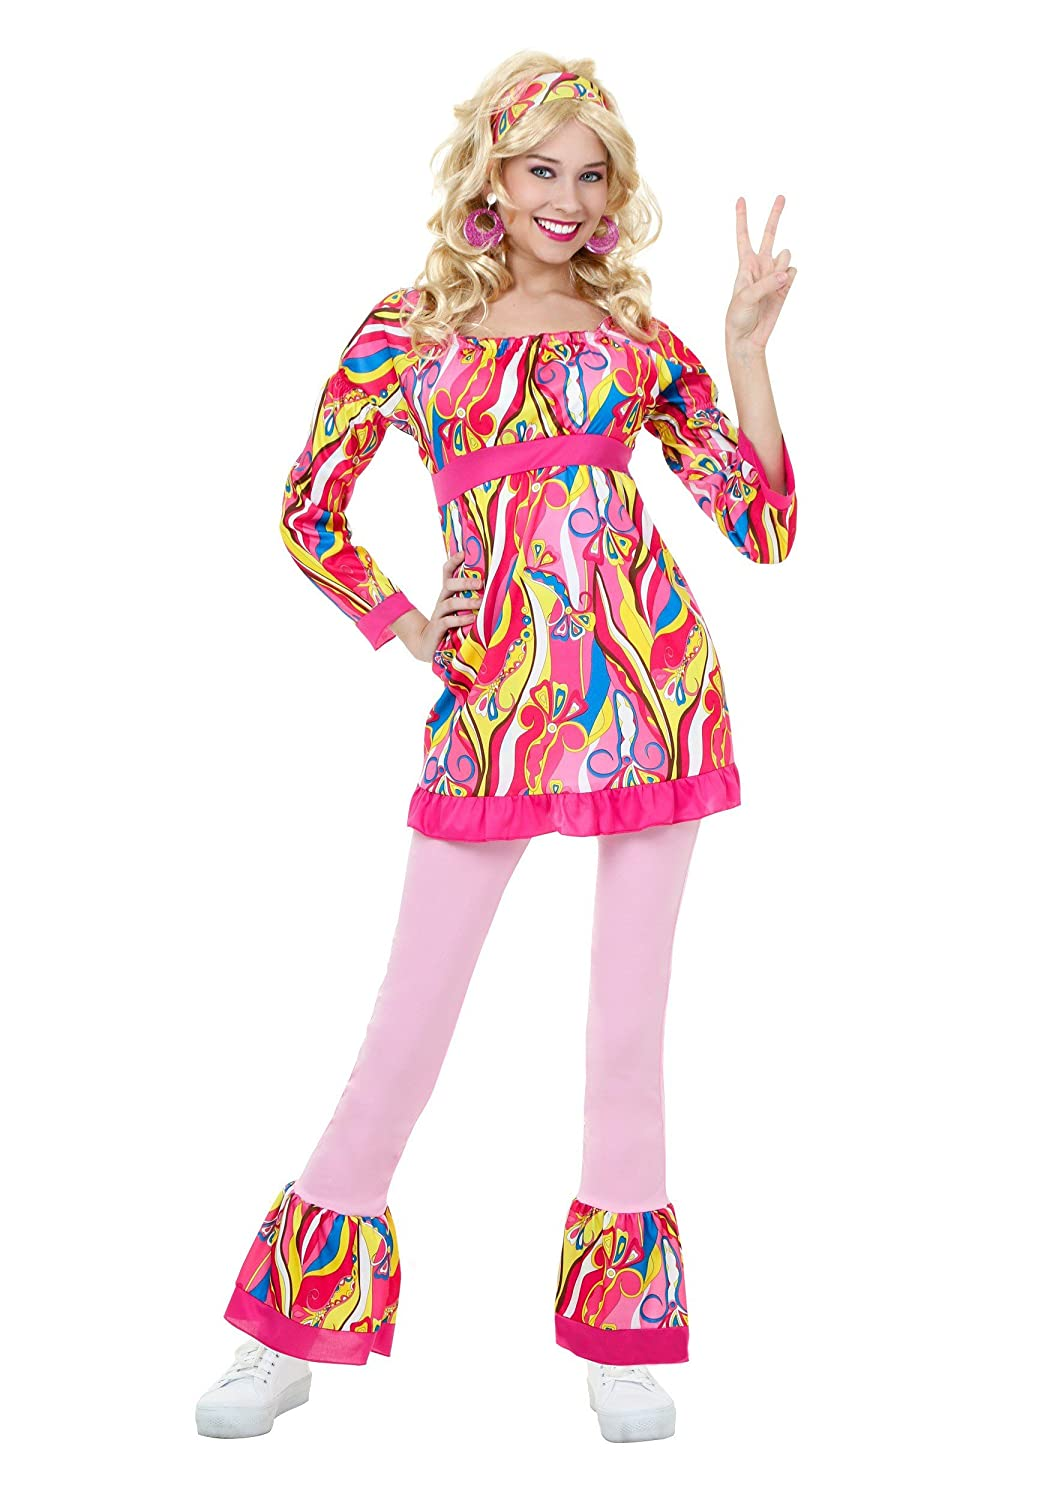 60s Costumes: Hippie, Go Go Dancer, Flower Child, Mod Style Adult Disco Top and Bell Bottoms Costume  AT vintagedancer.com